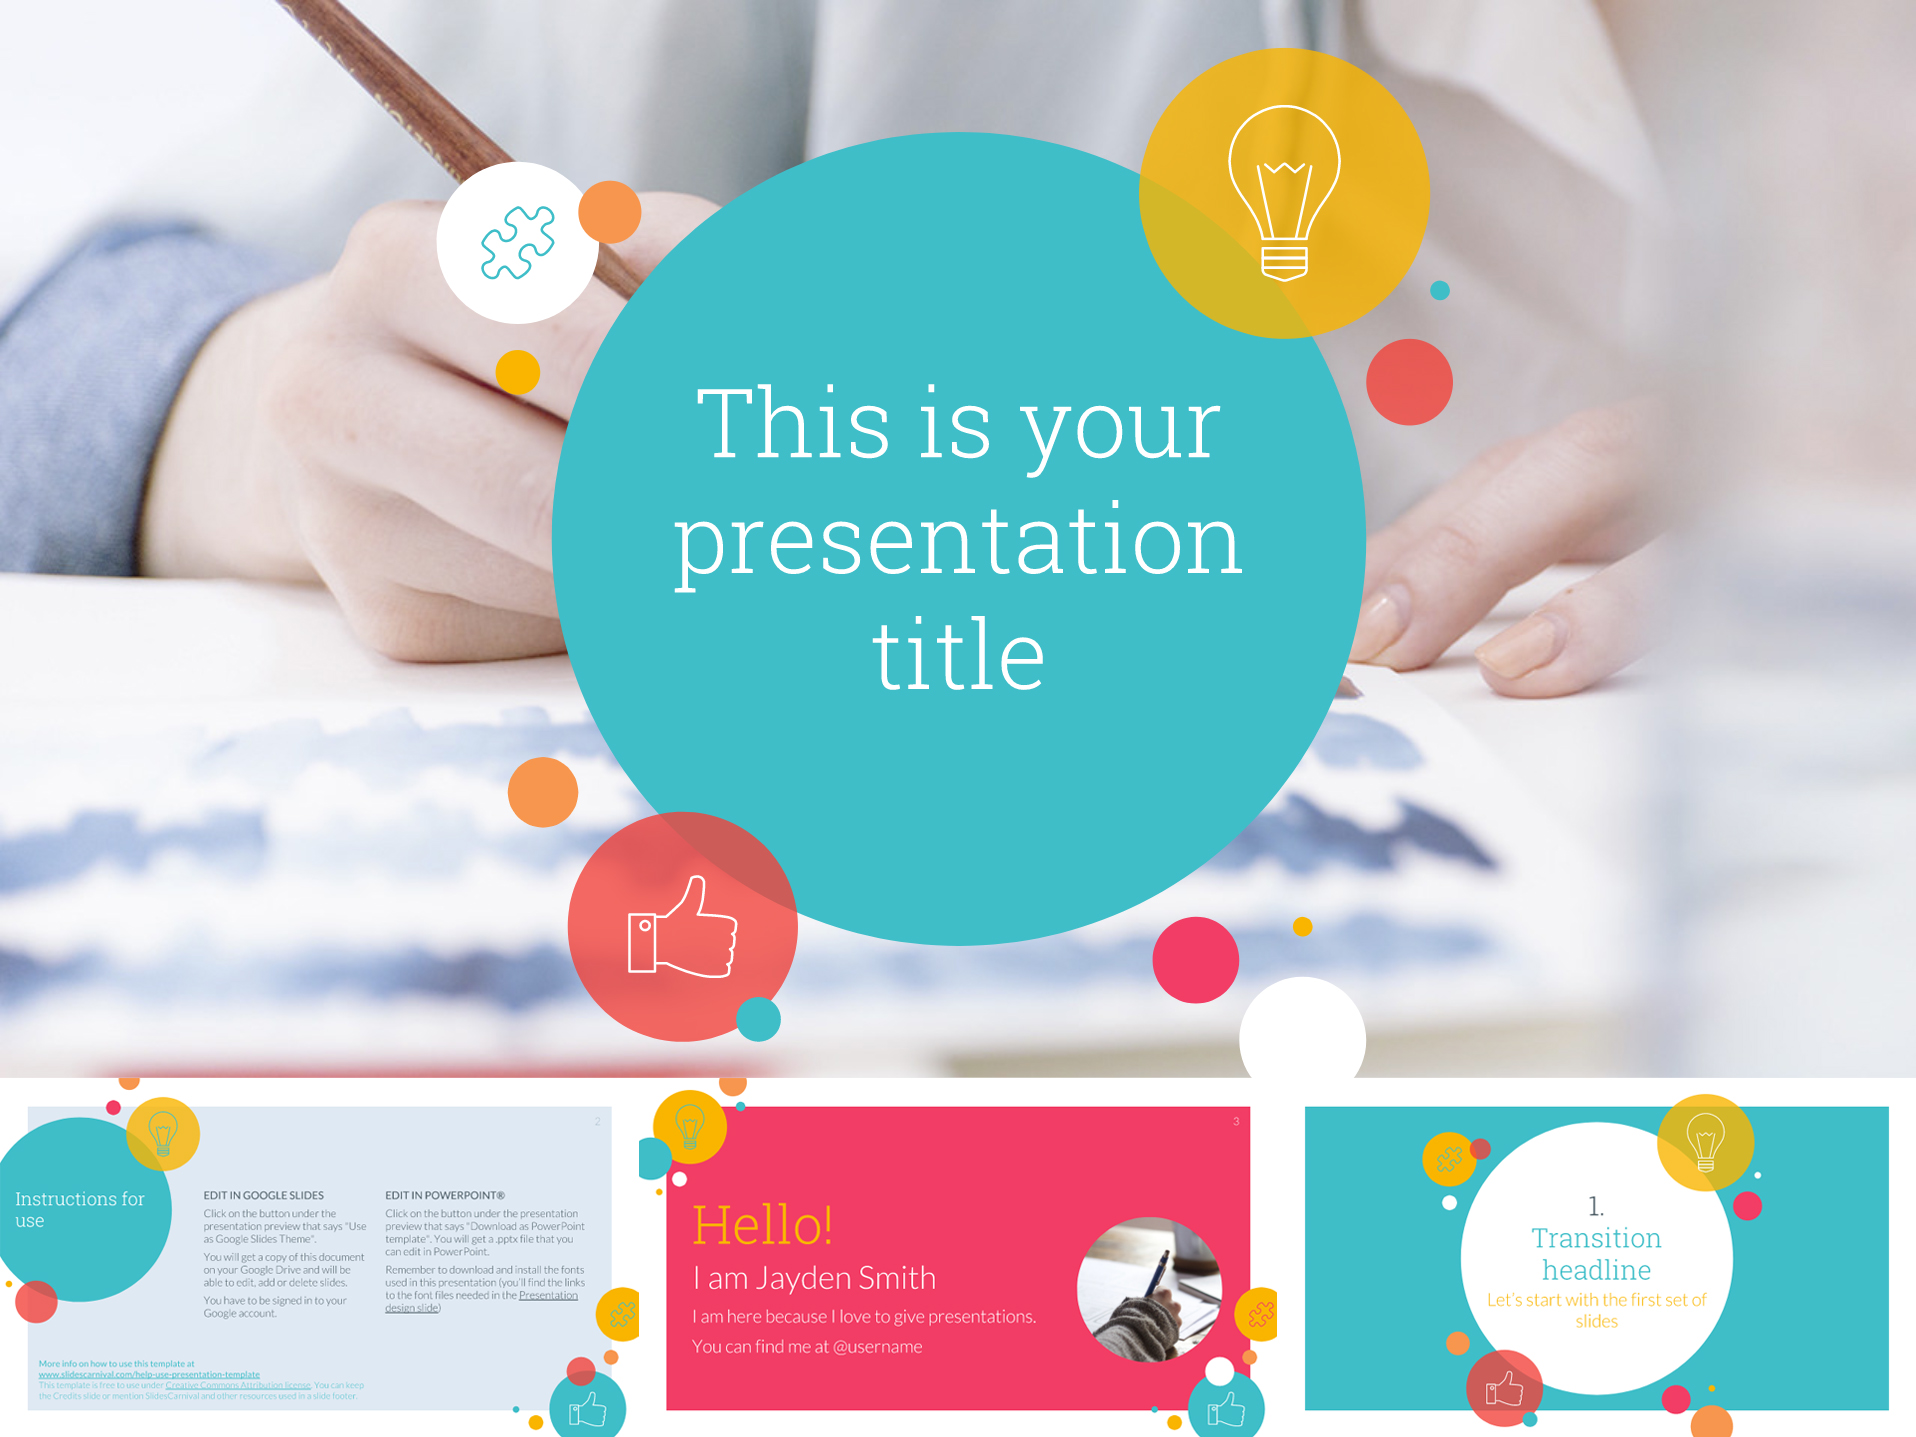 Free Google Slides Templates For Your Next Presentation - Drive presentation templates